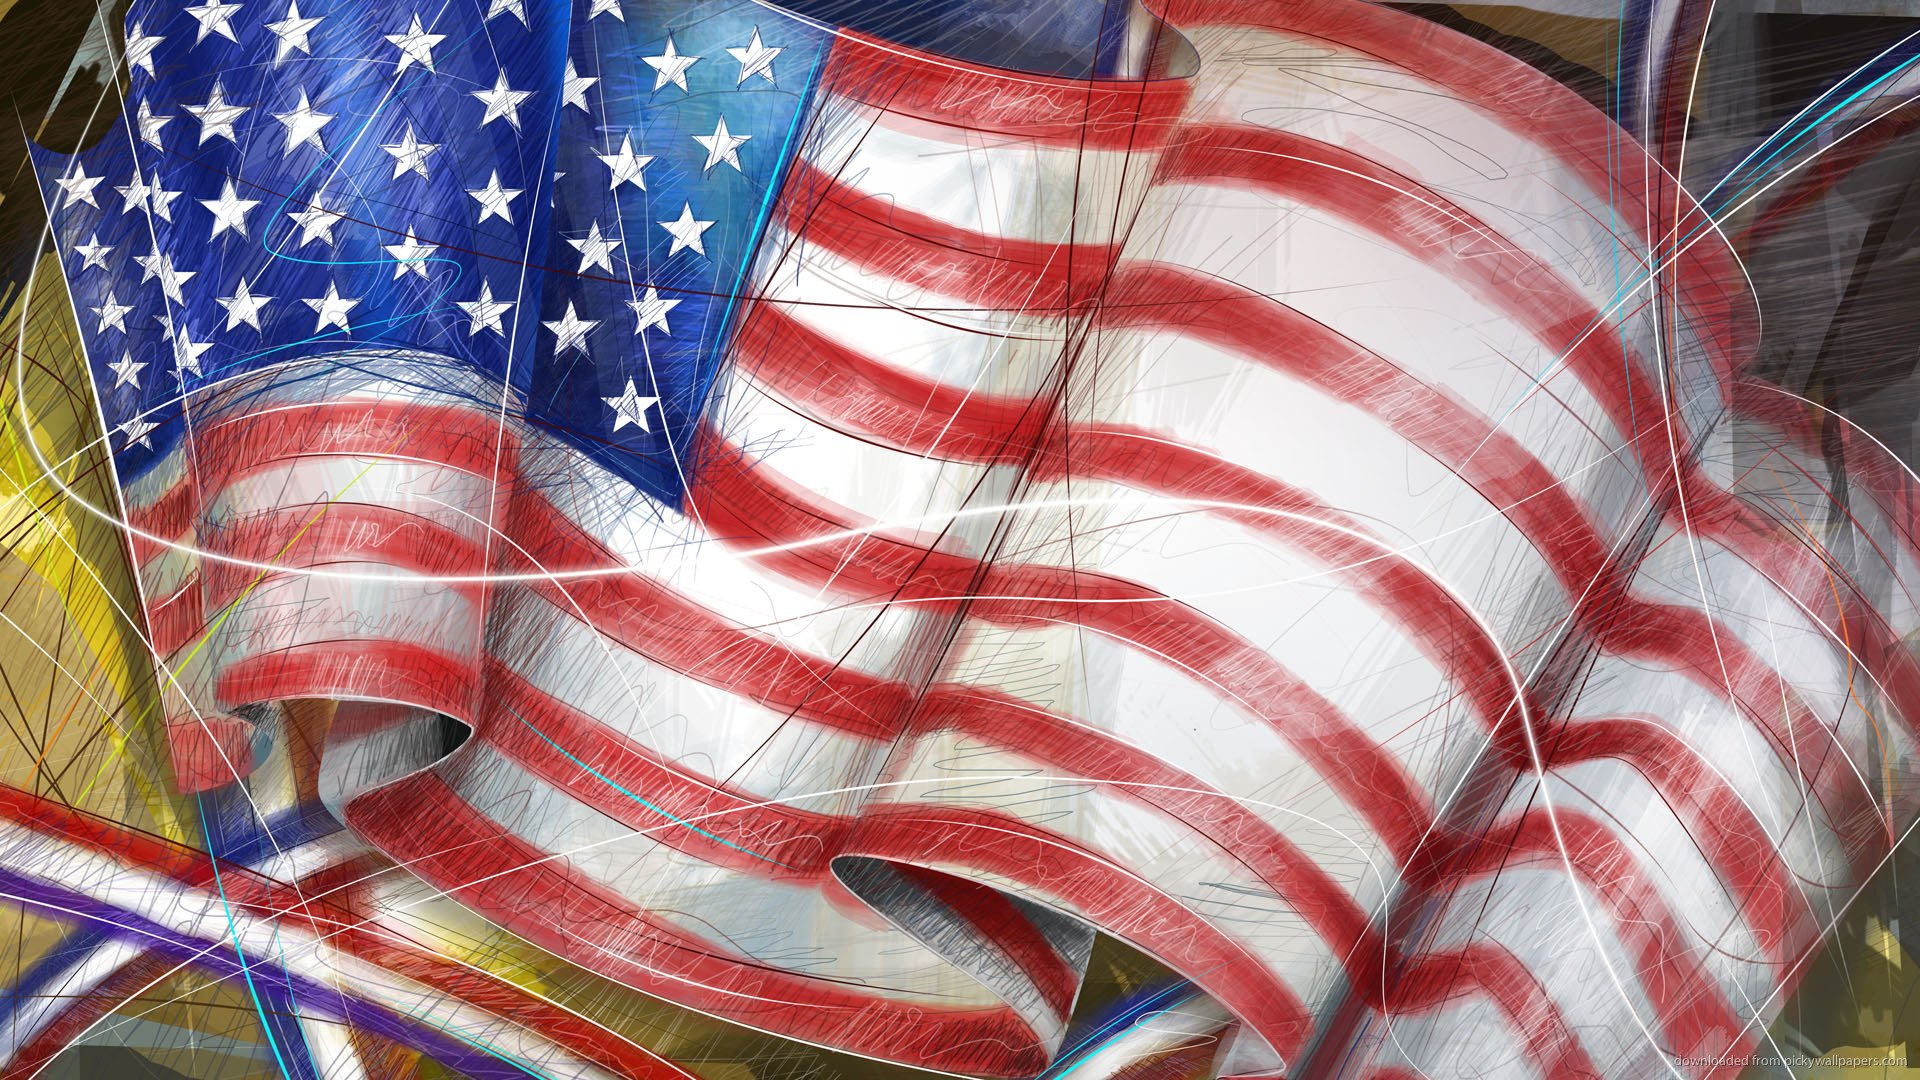 Hand drawn American Flag Screensaver For Amazon Kindle DX 1920x1080